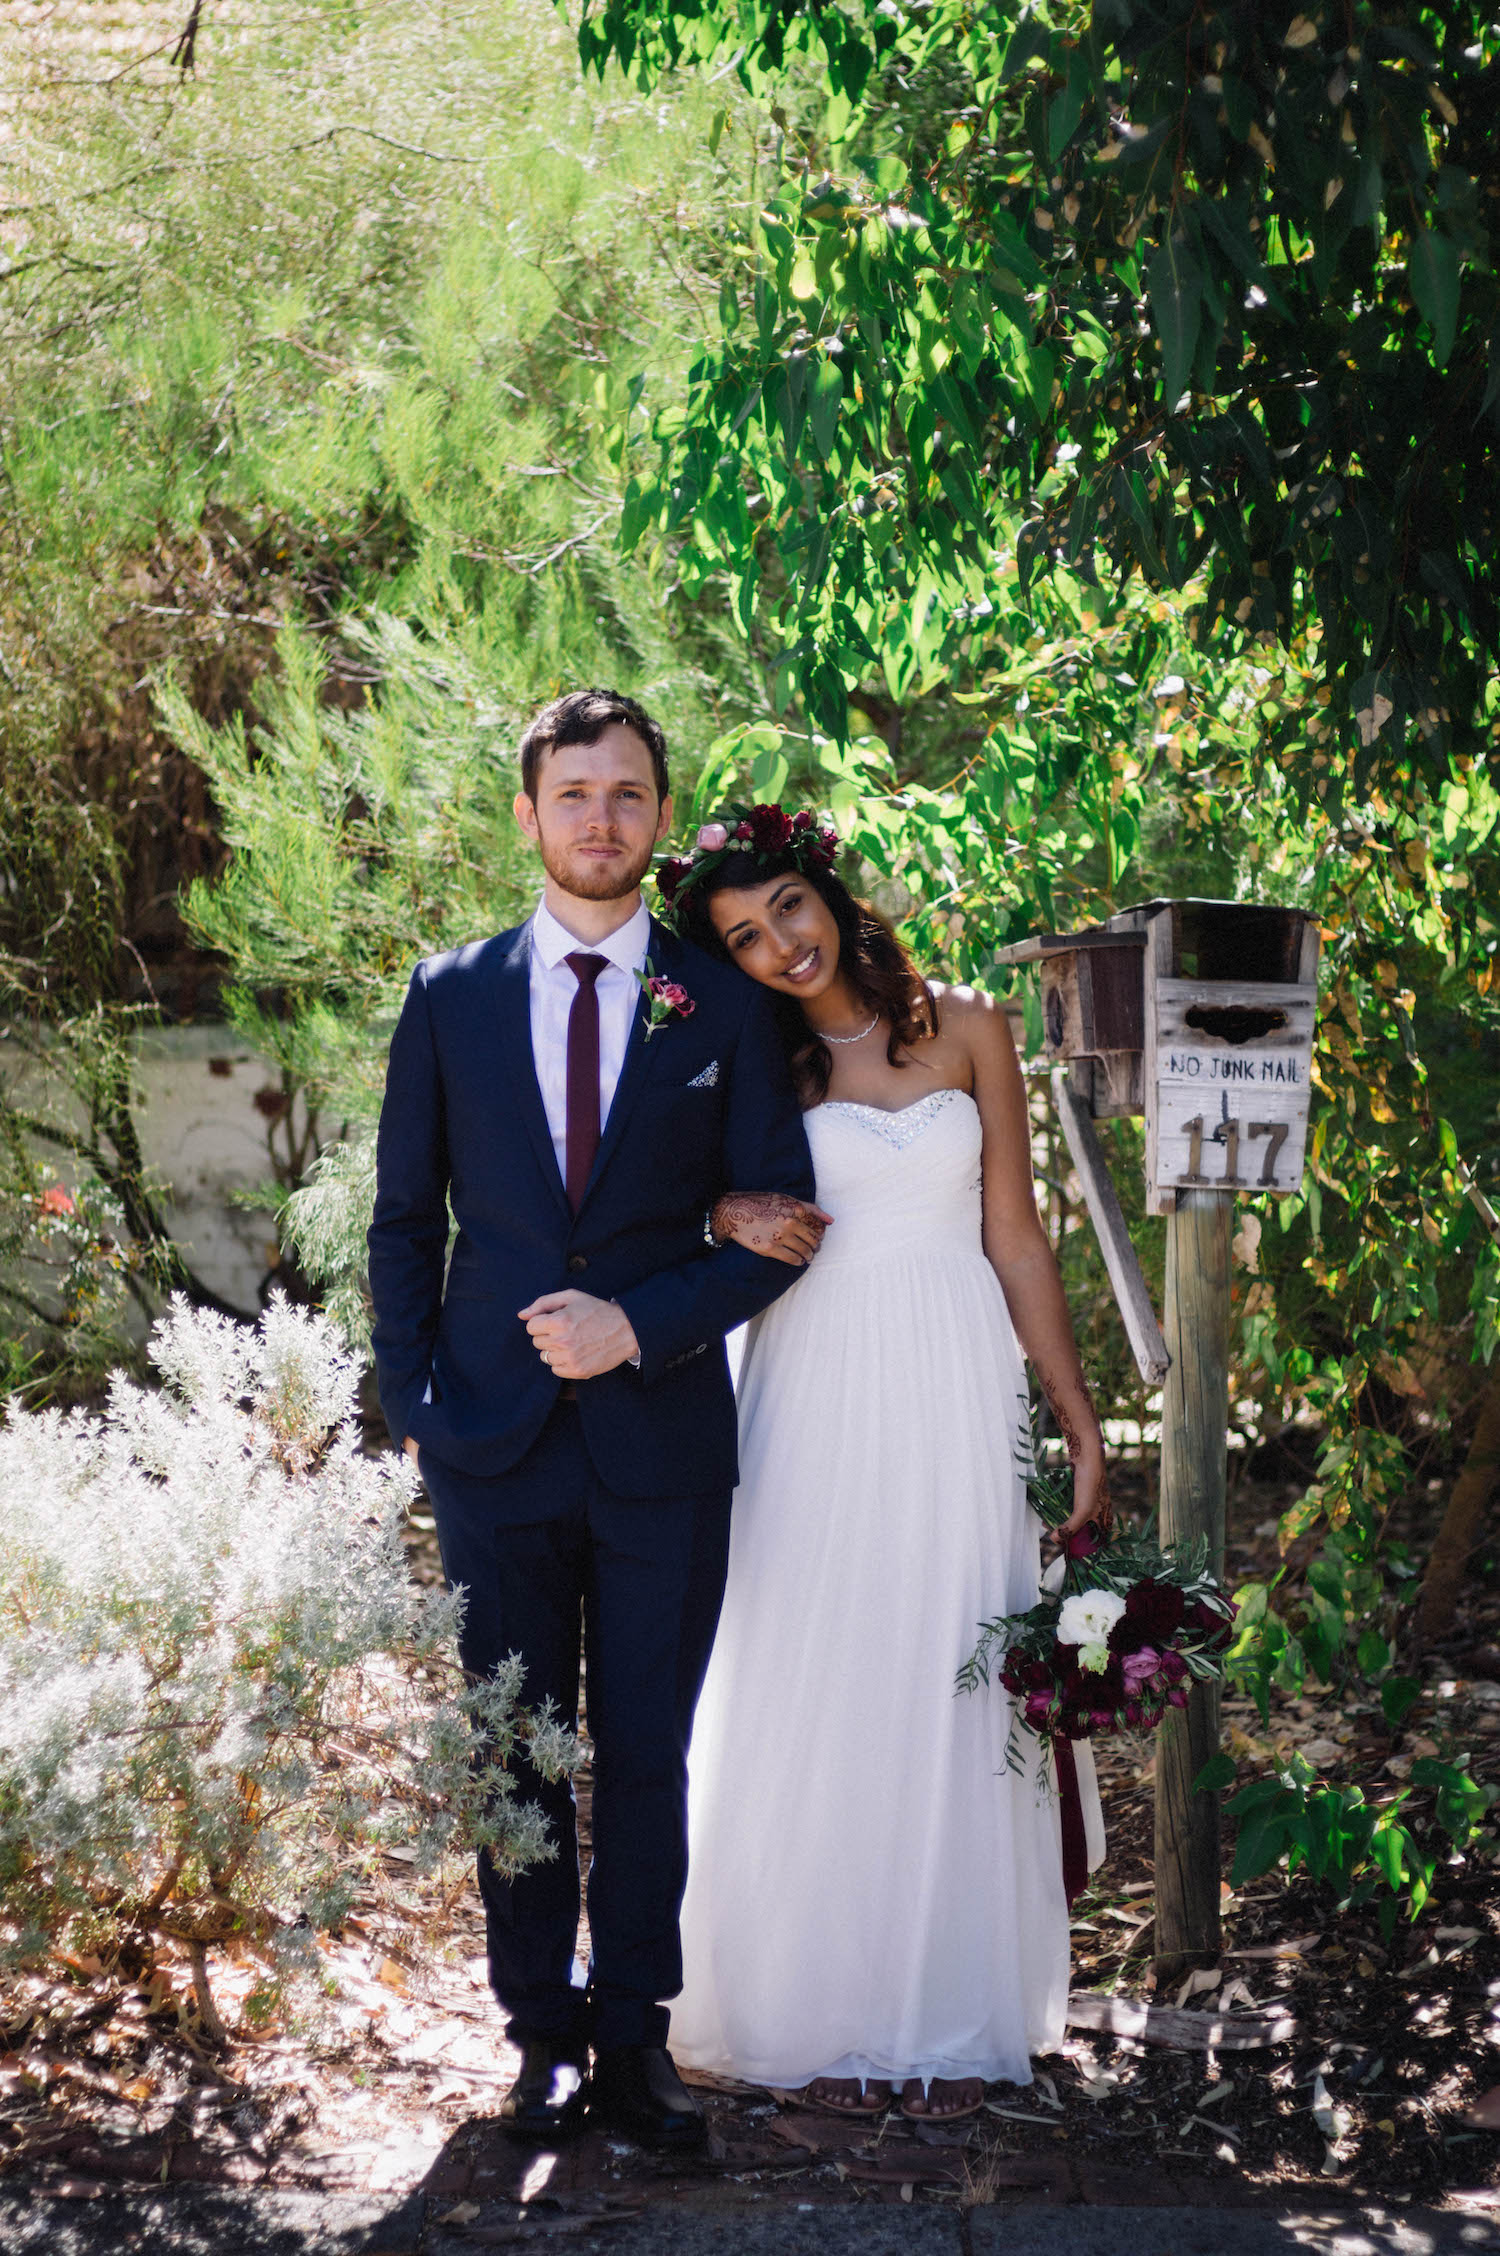 The bride & groom standing together during their wedding portraits in suburban Subiaco, Australia, taken by Rhianna May Destination Wedding Photographer